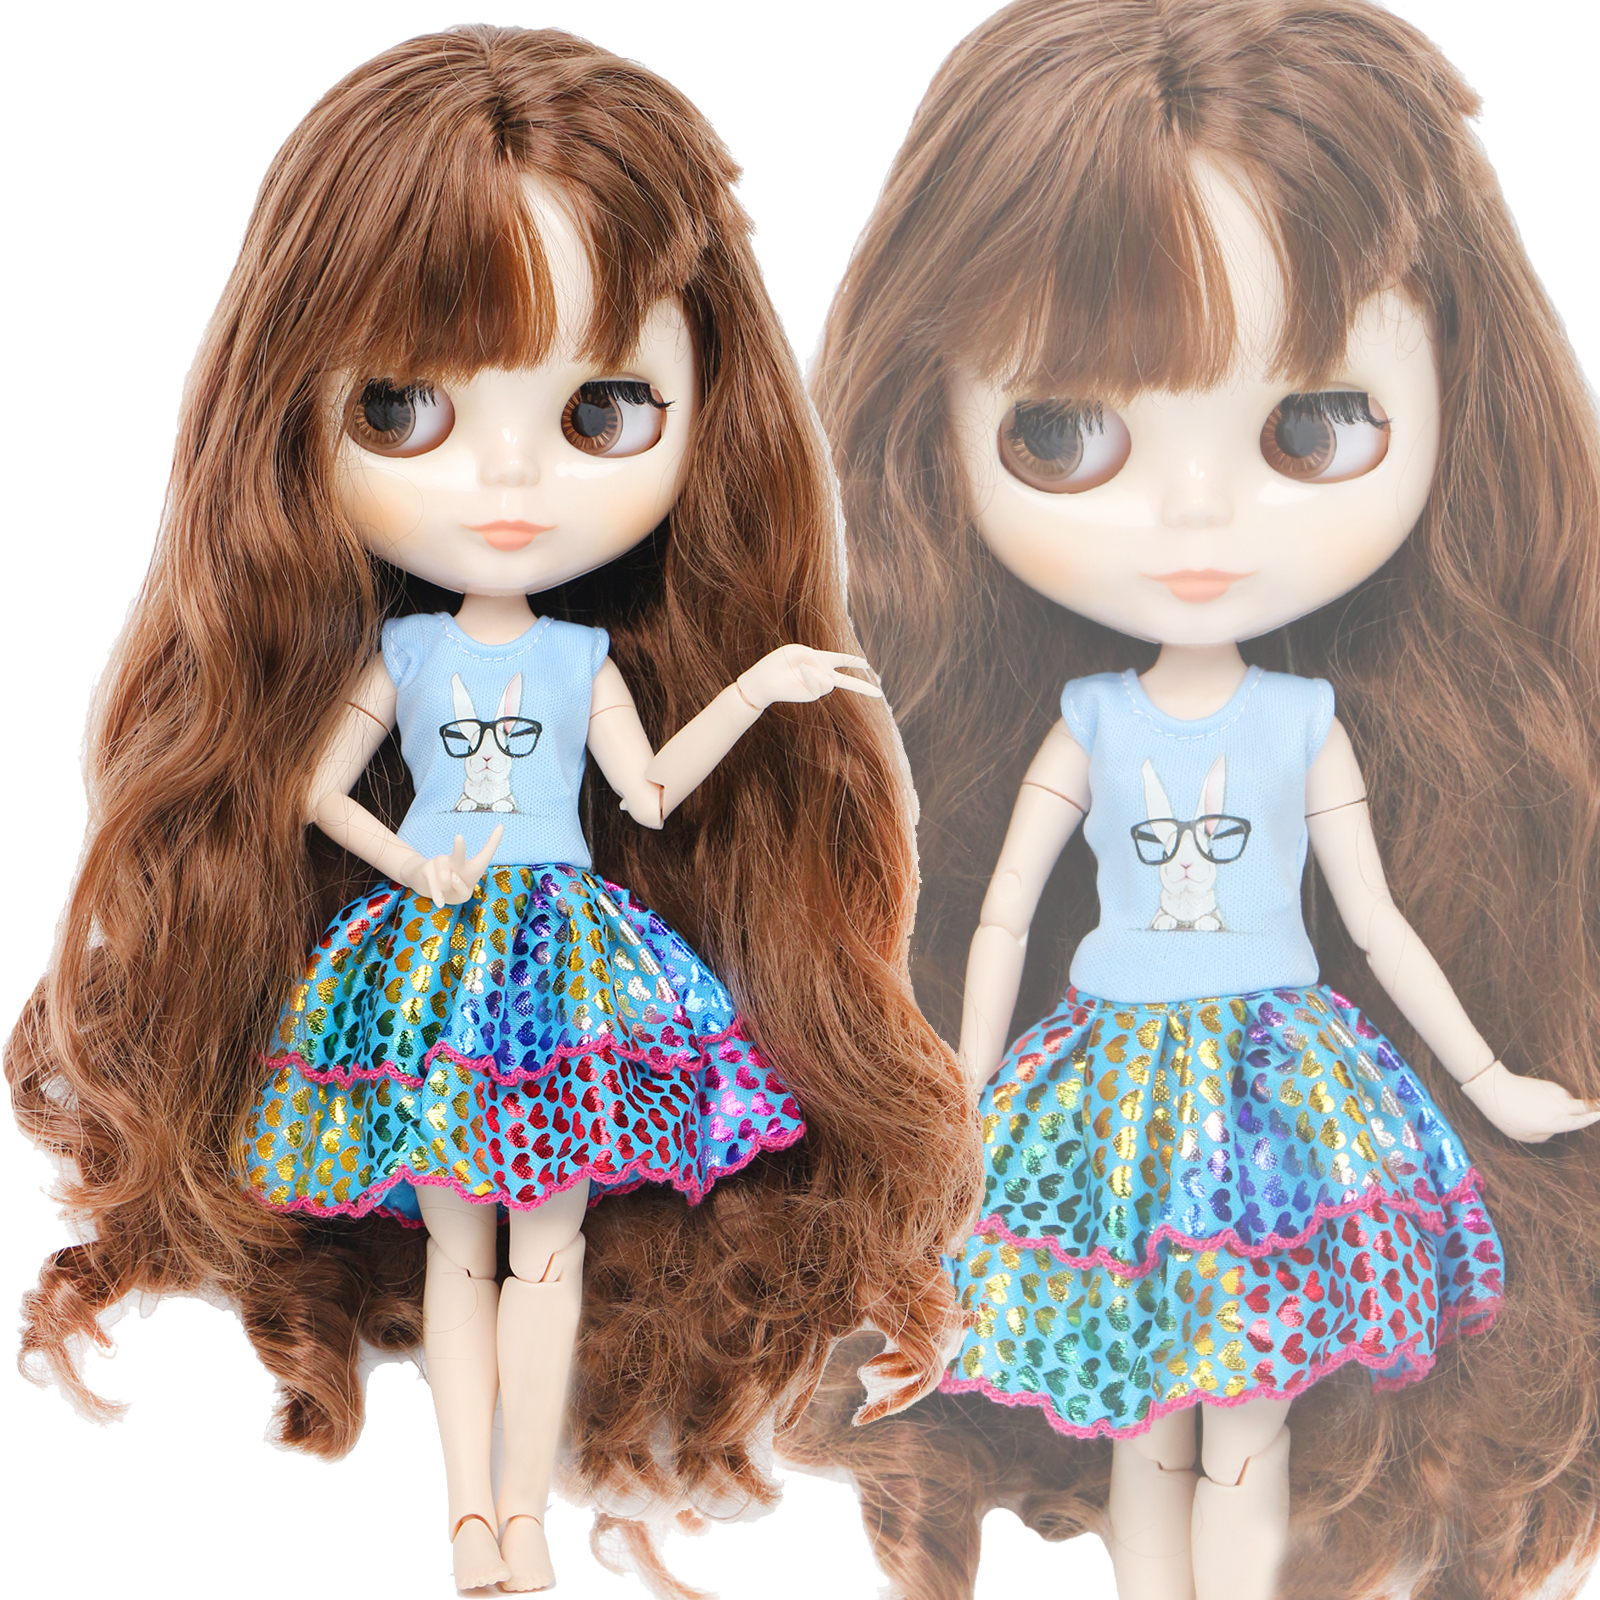 Blue Jeans Casual Wear Clothes For Blythe Doll Kids Toy A-line Skirt For Blyth